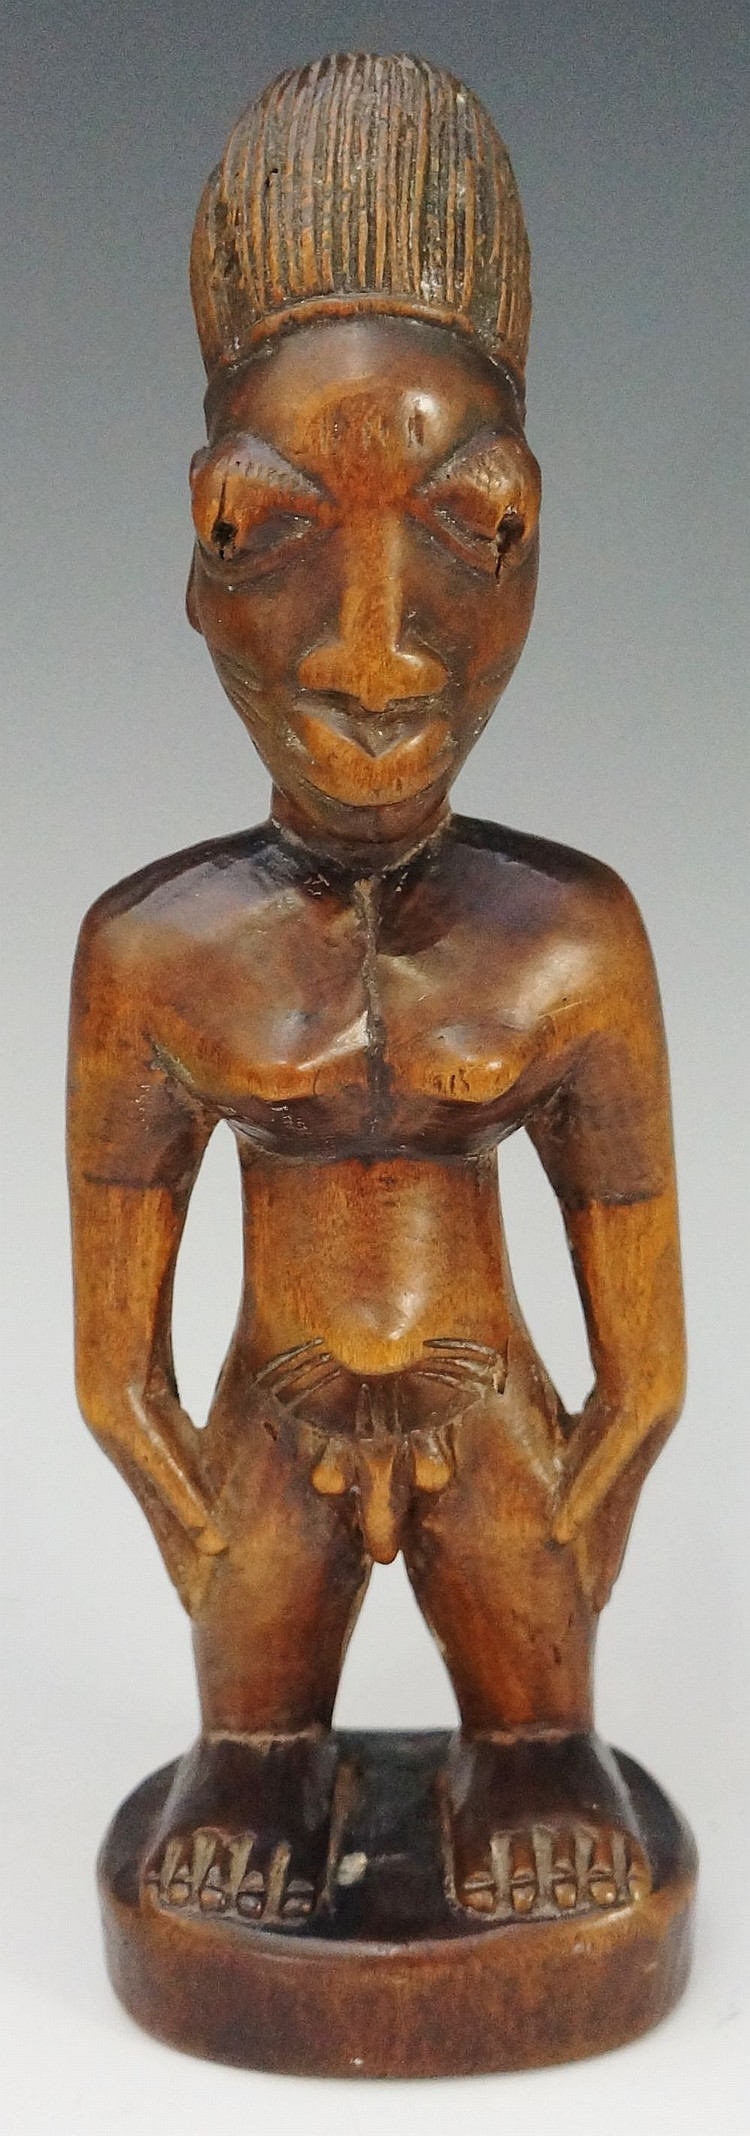 An African tribal figure of a man, standing, his hands on his hips, 25cm hi